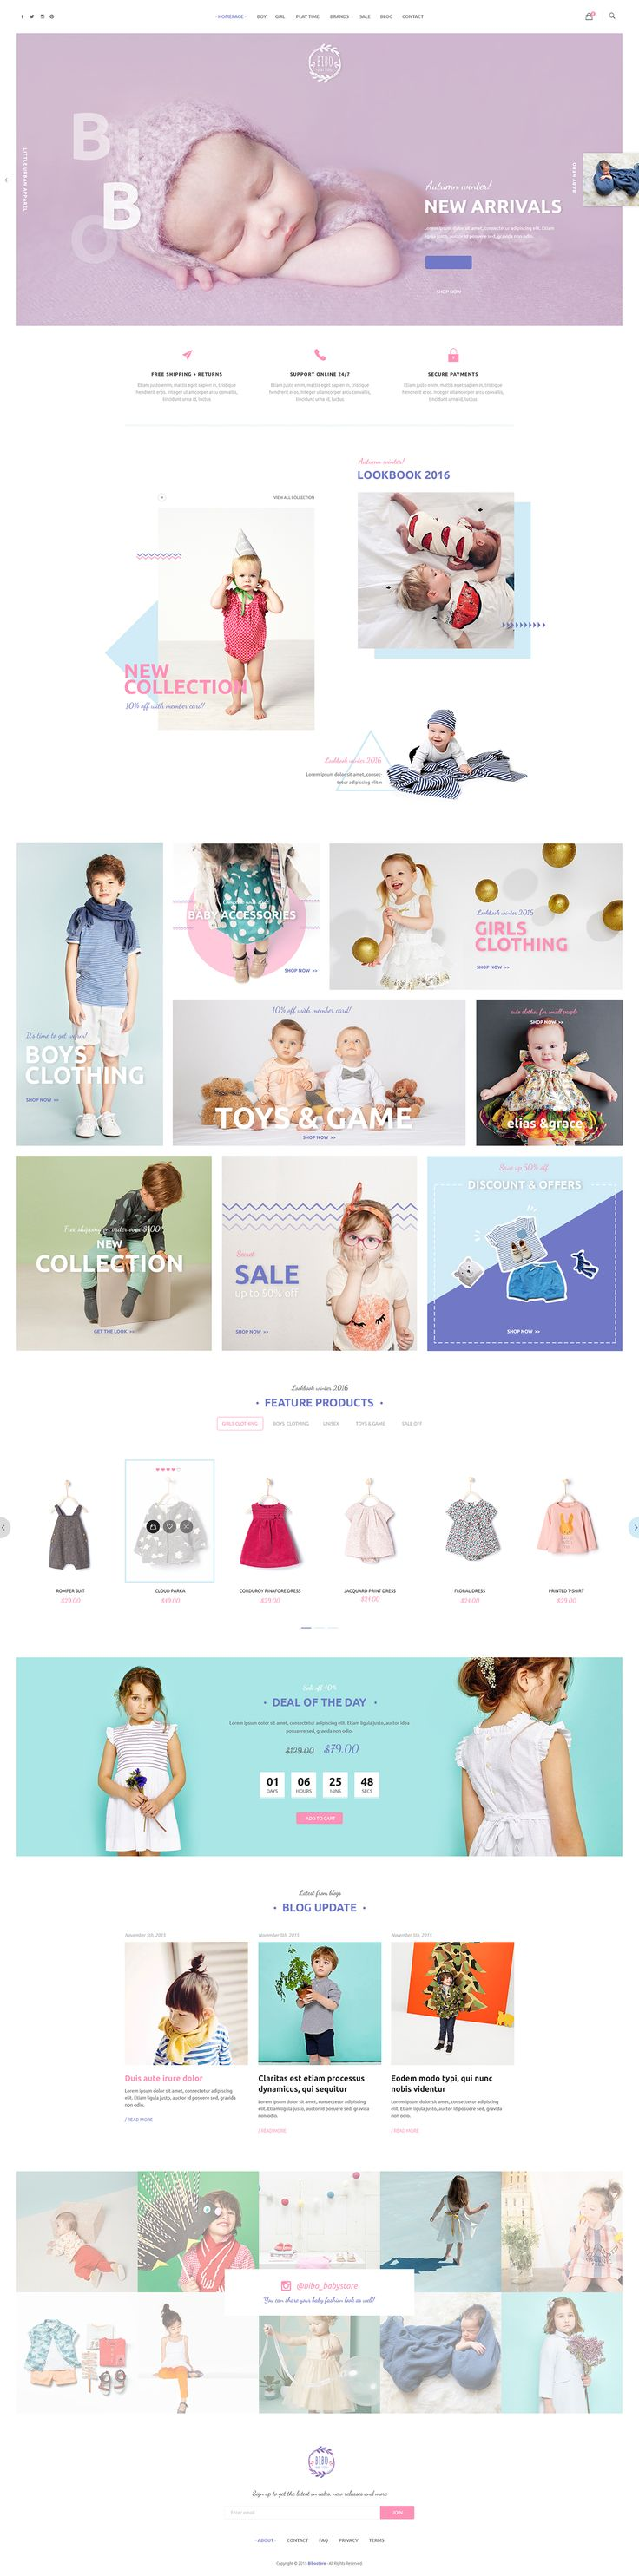 Bibo - Baby Store PSD Template on Behance